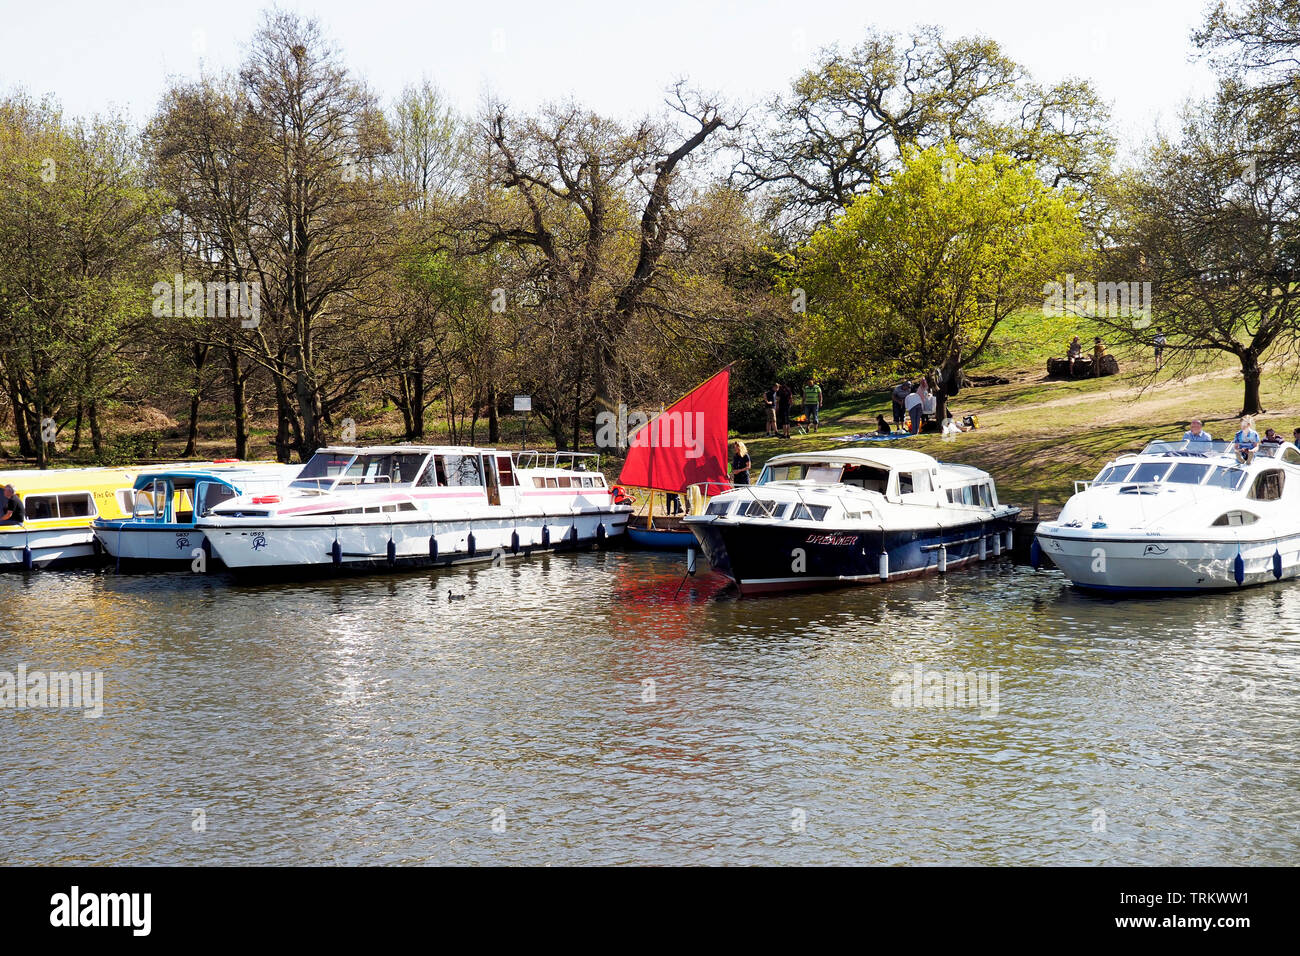 Large motor cruisers moored at Salhouse Broad, with the birght red sail of a small dinghy between them. - Stock Image